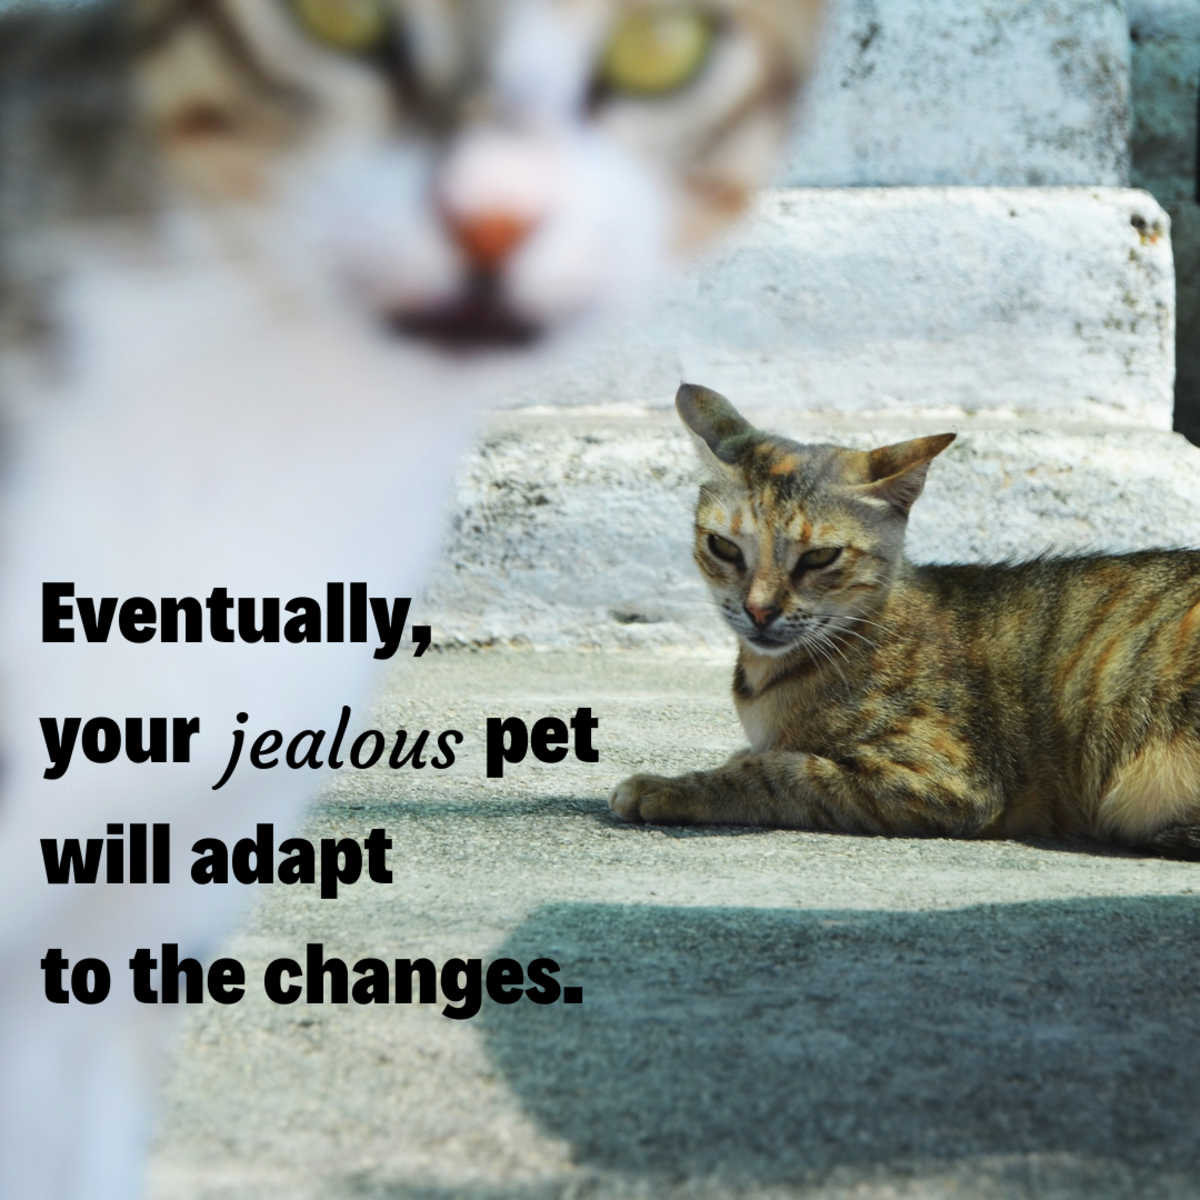 Be patient with your pets. Change is hard for everyone!